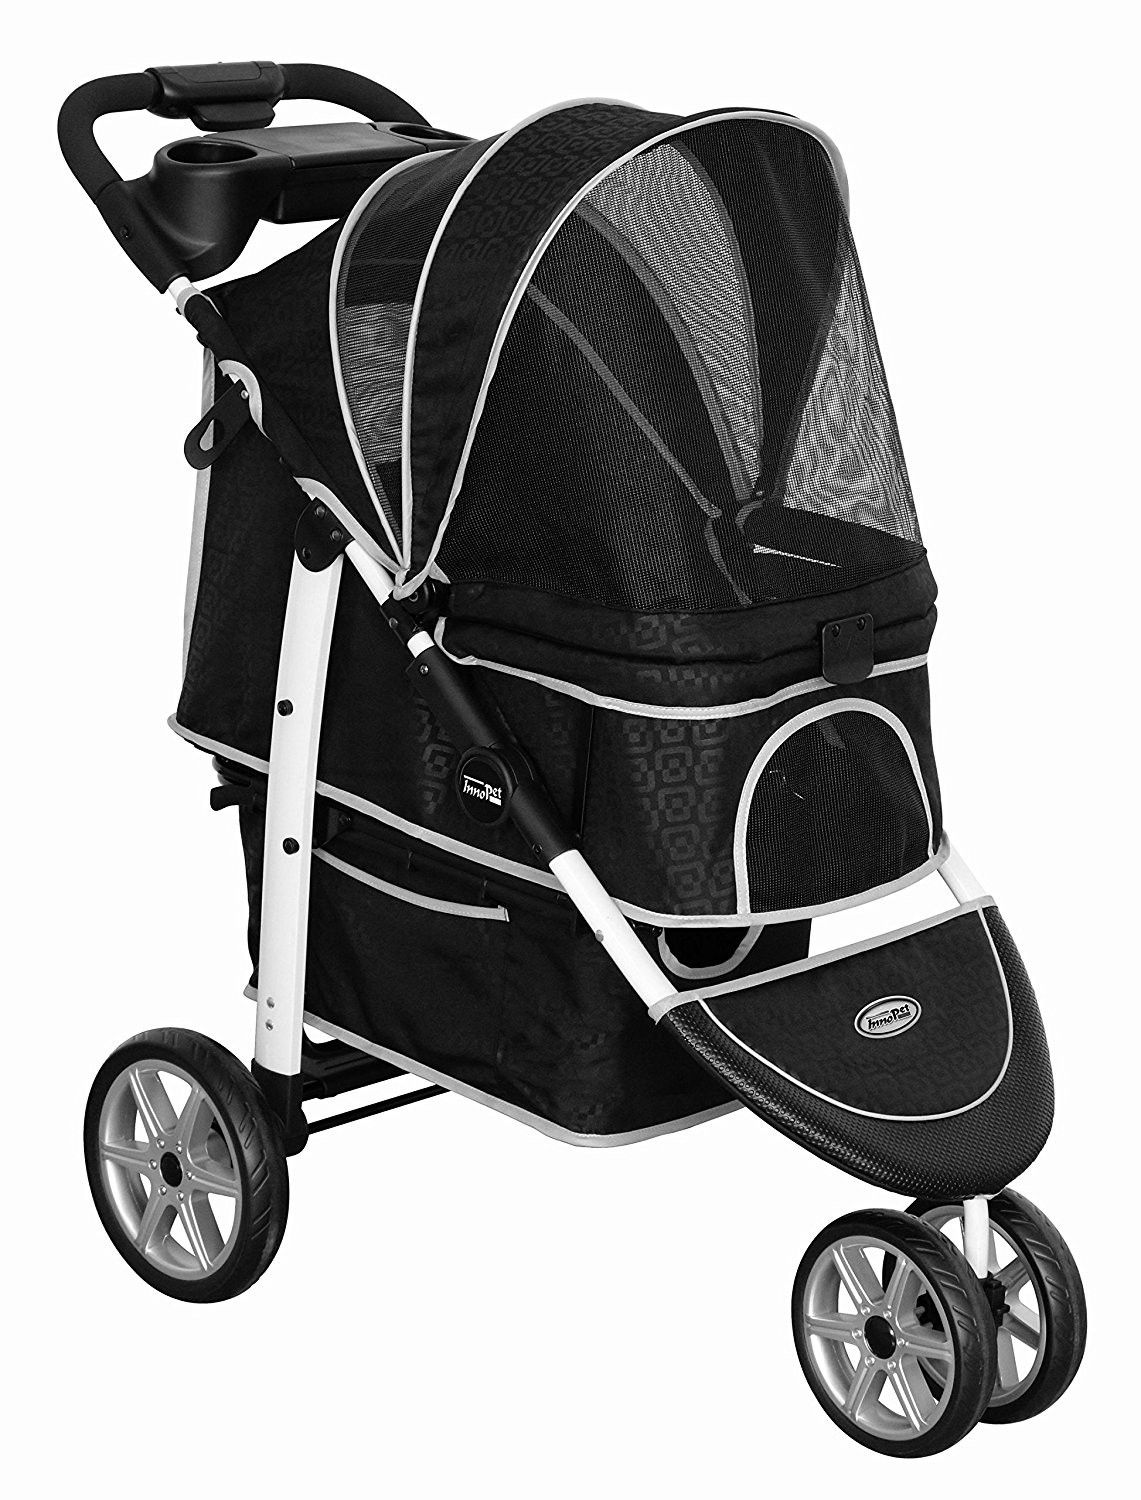 Monaco Pet Buggy and Stroller by InnoPet Black incl Rain